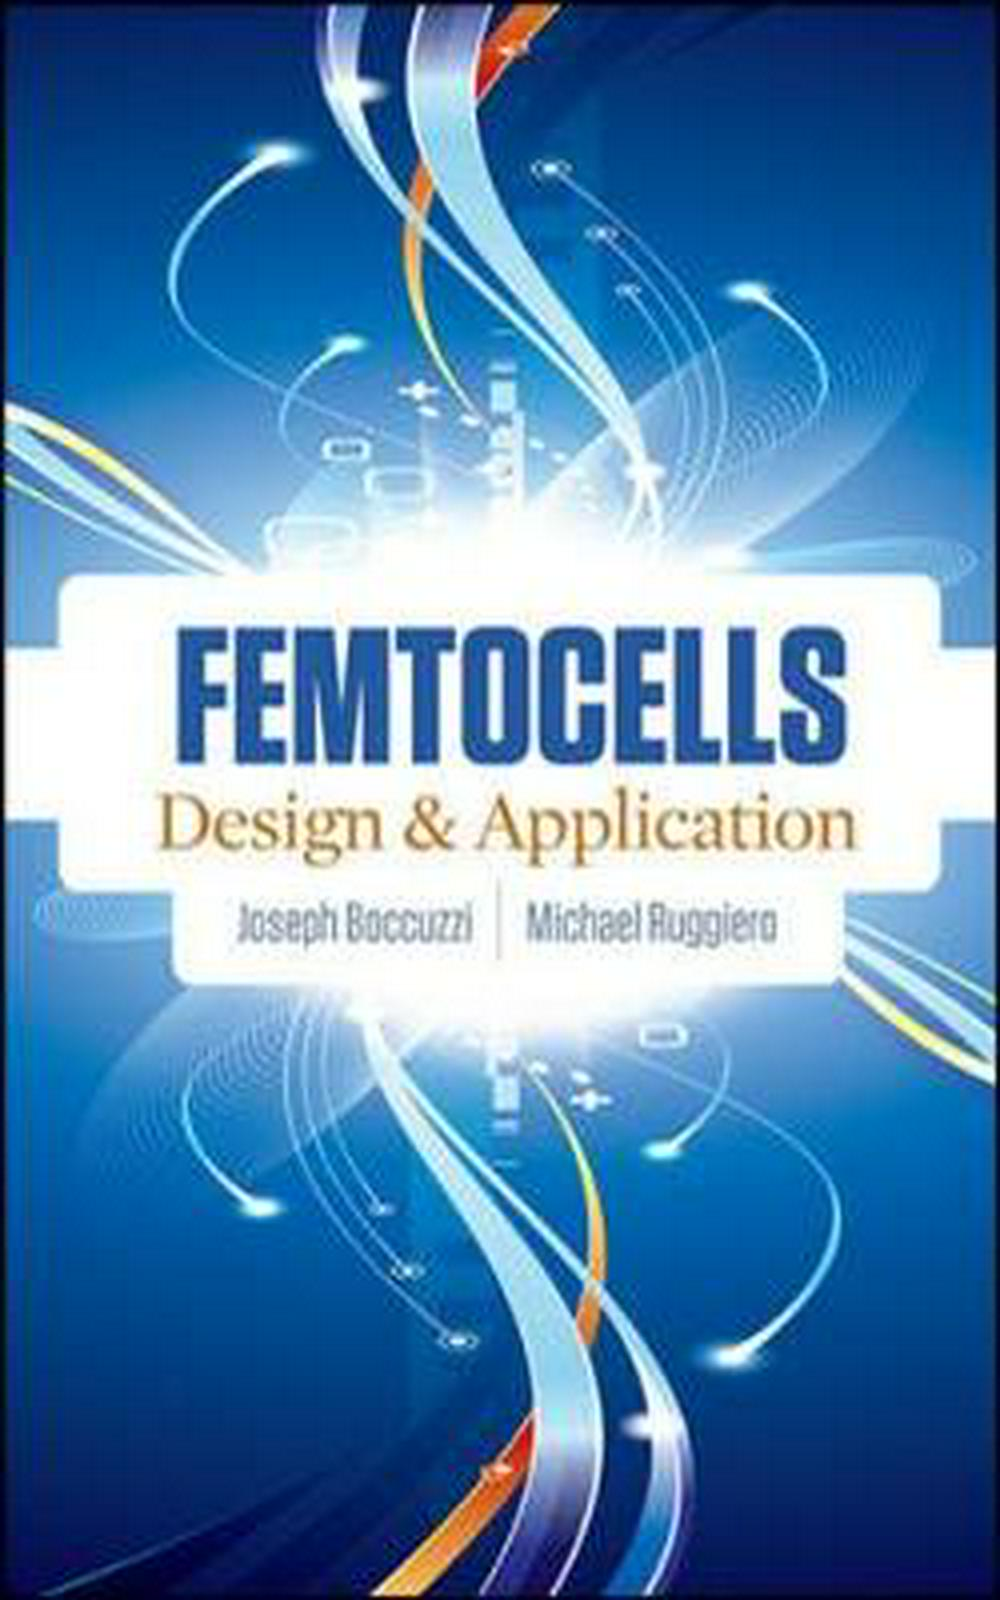 Femtocells: Design and application by Joseph Boccuzzi, ISBN: 9780071633581